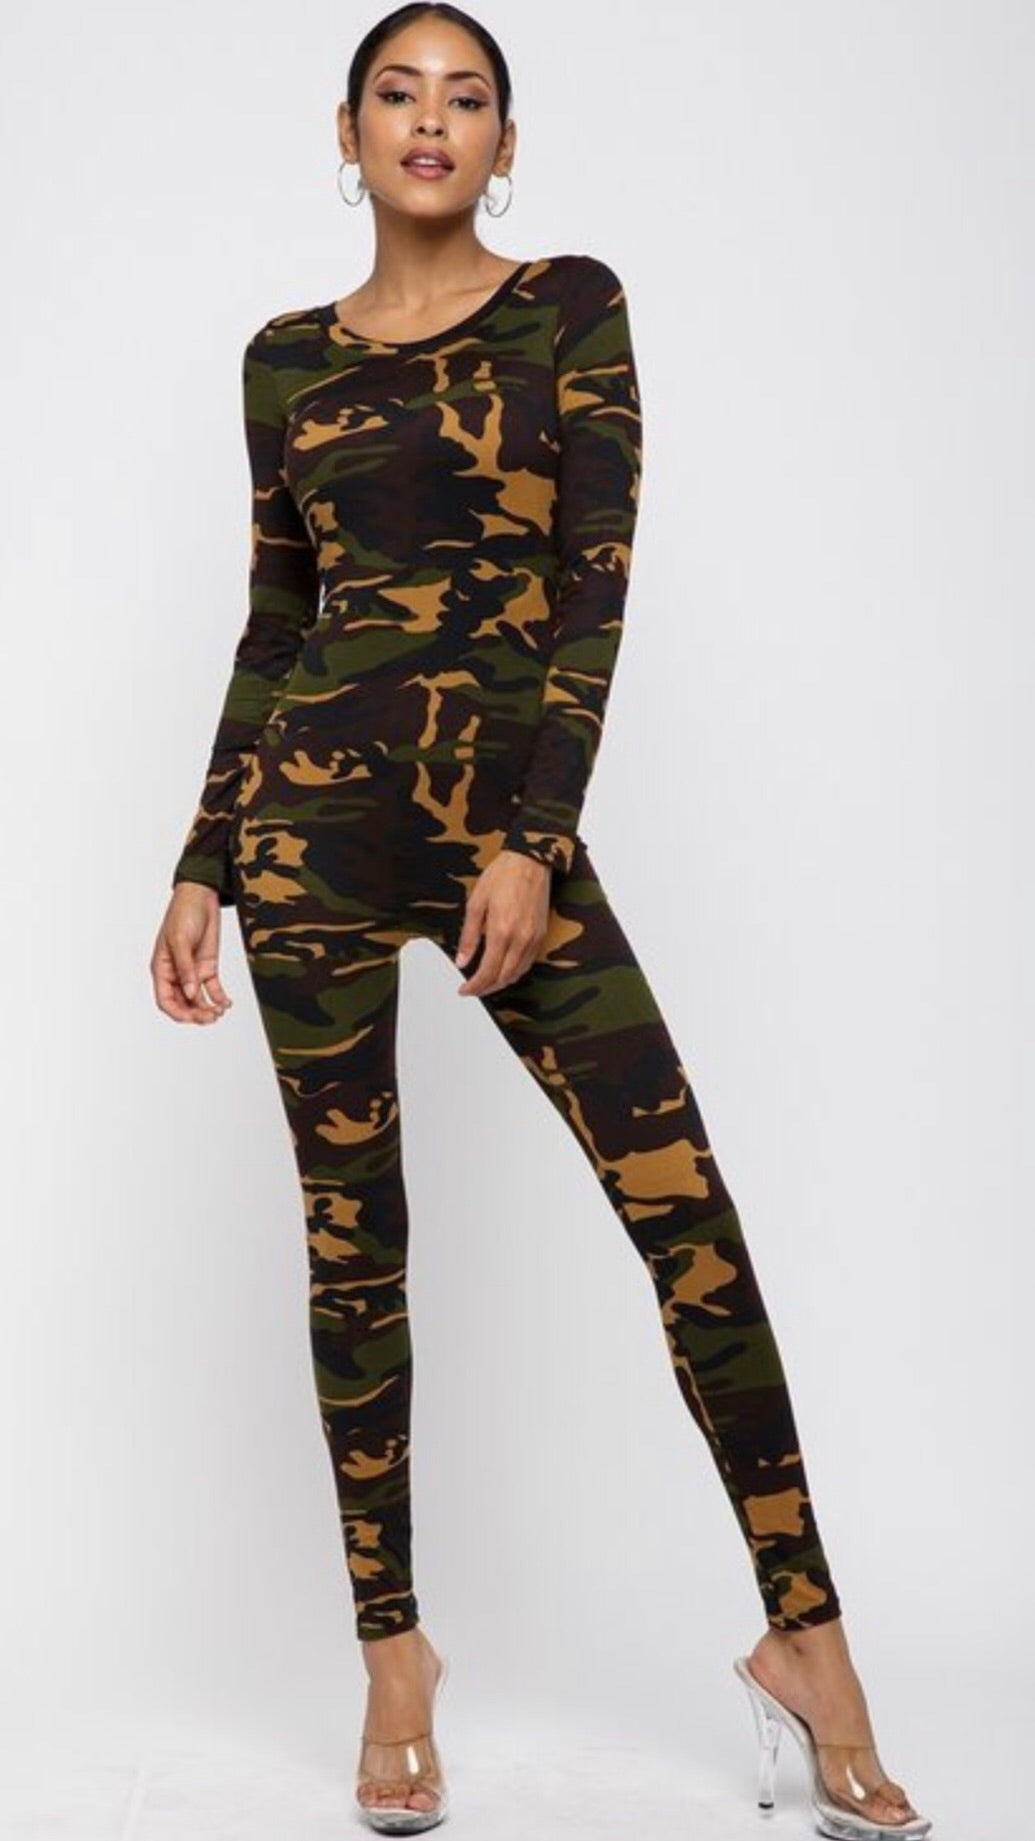 Camo Full Bodysuit